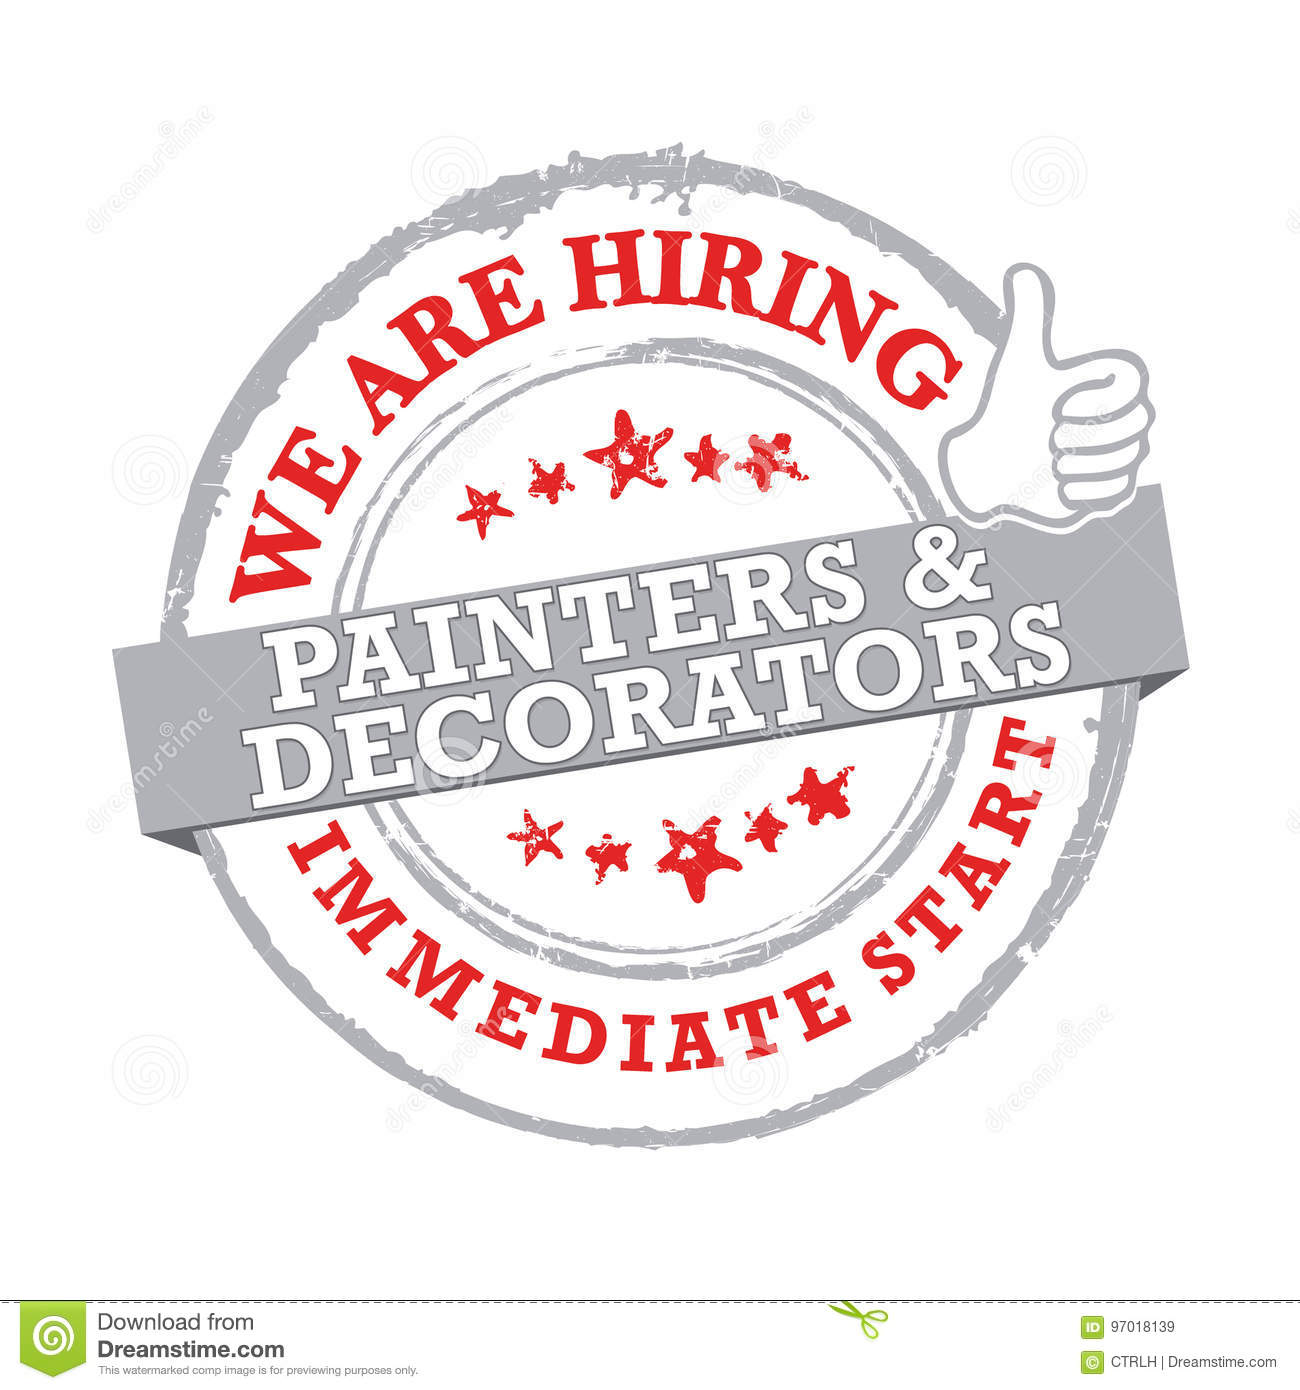 Painter Decorator Sign Stock Vector: We Are Hiring Painters And Decorators